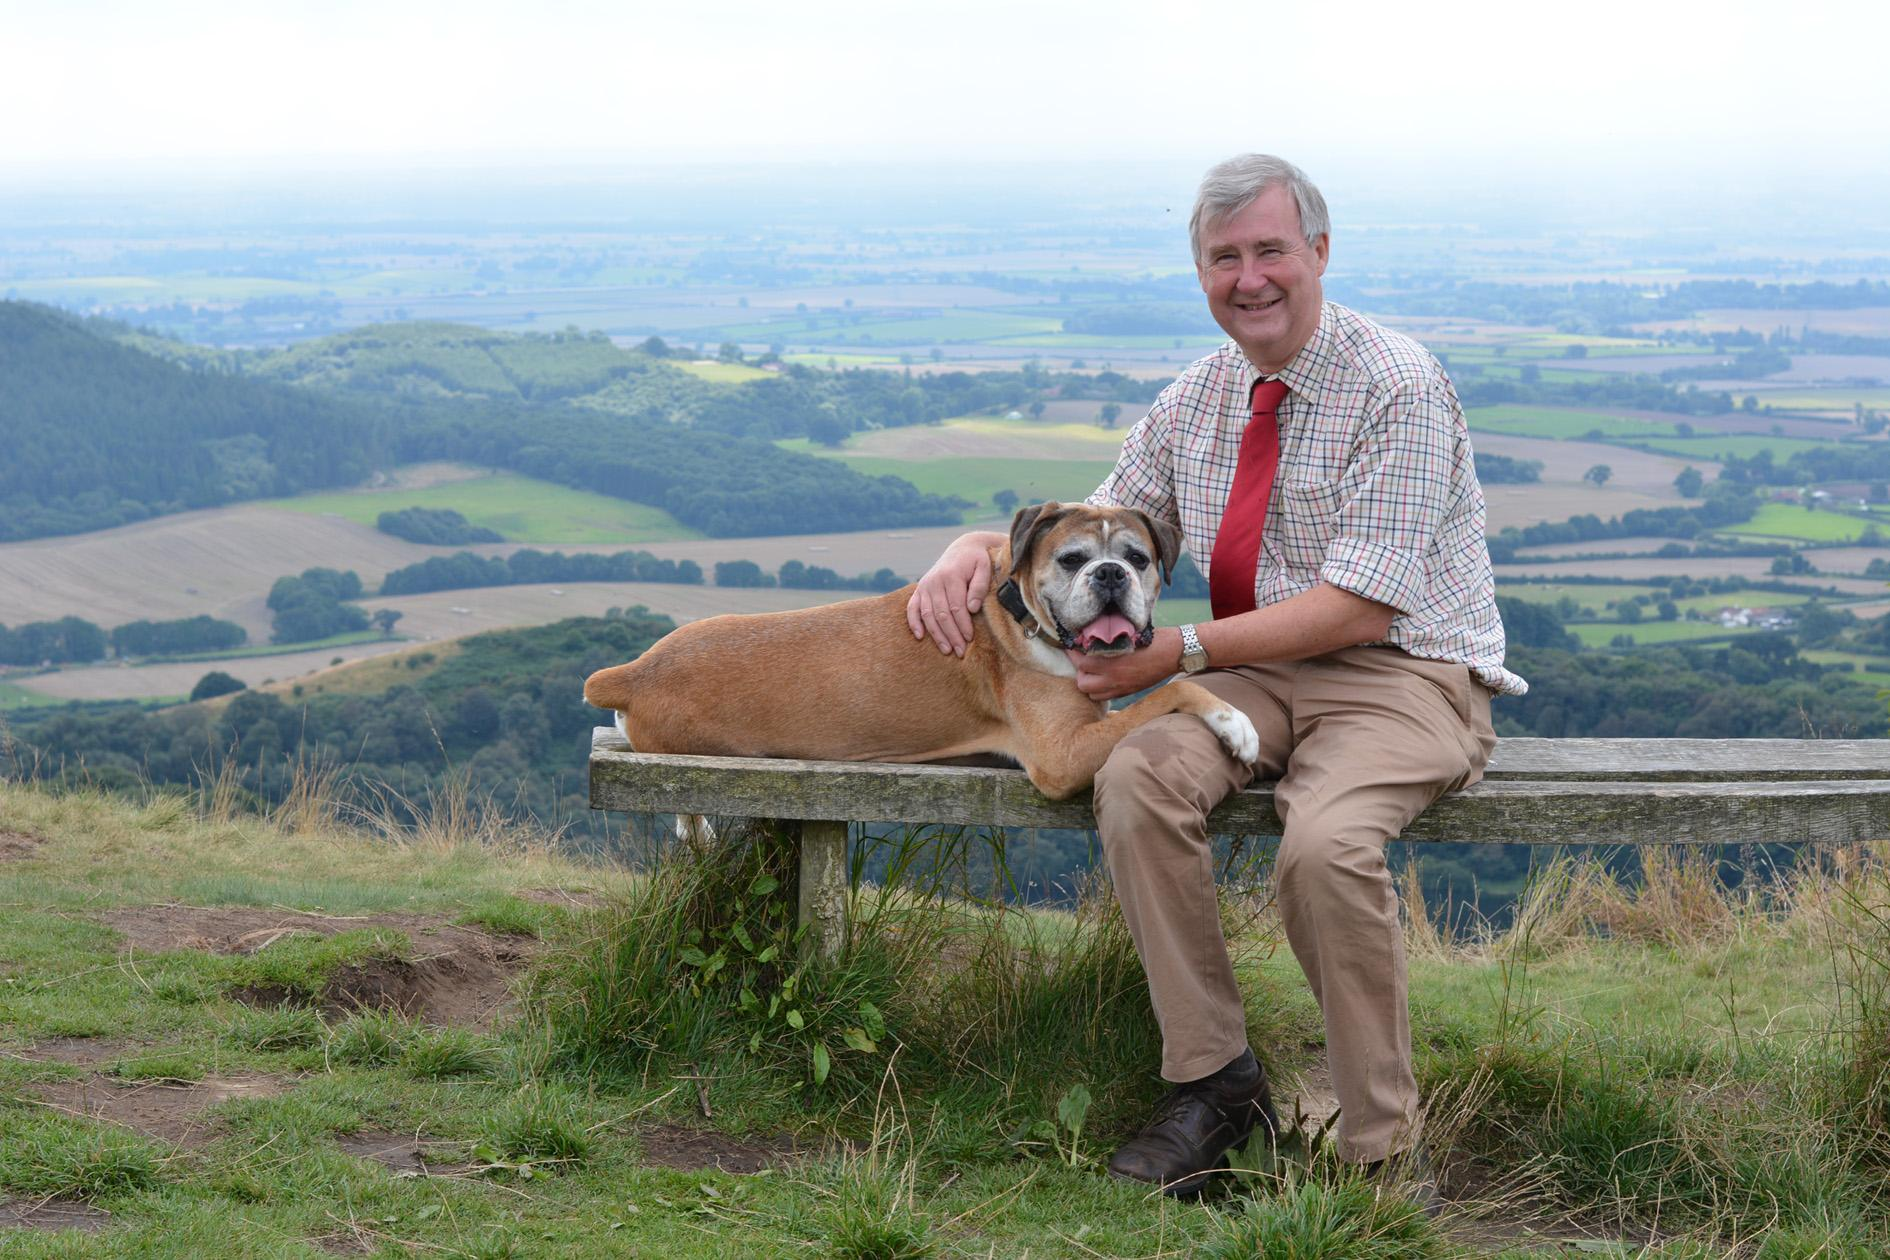 Picture of Peter Wright, star of the Channel 5 programme - The Yorkshire Vet. Credit: Channel 5, Daisybeck Studios